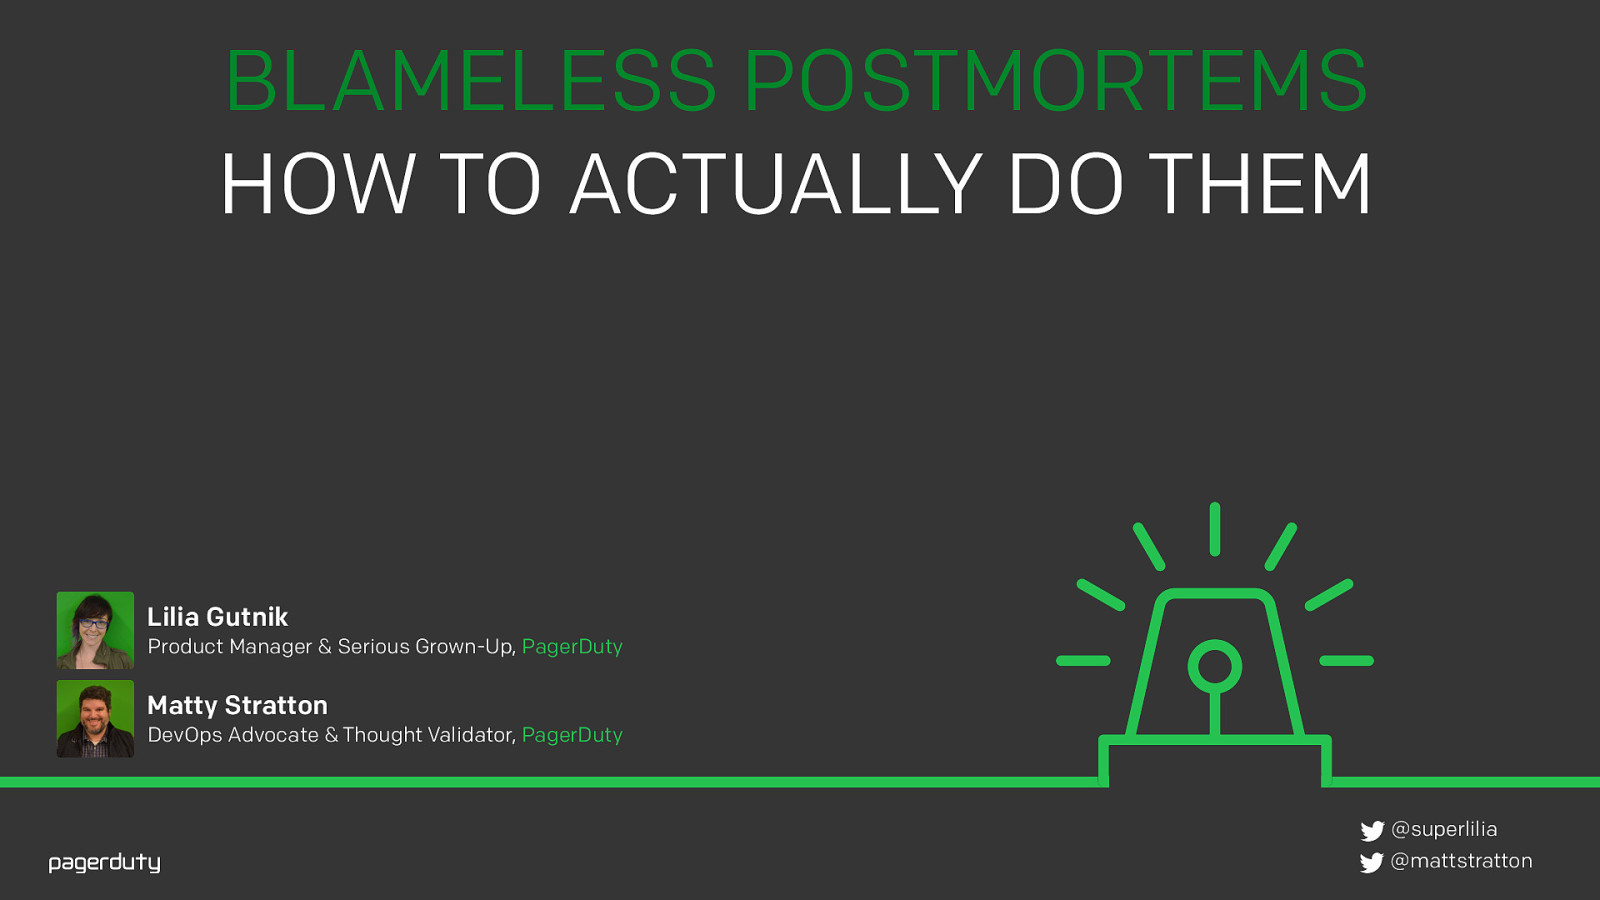 Blameless Postmortems: How to Actually Do Them